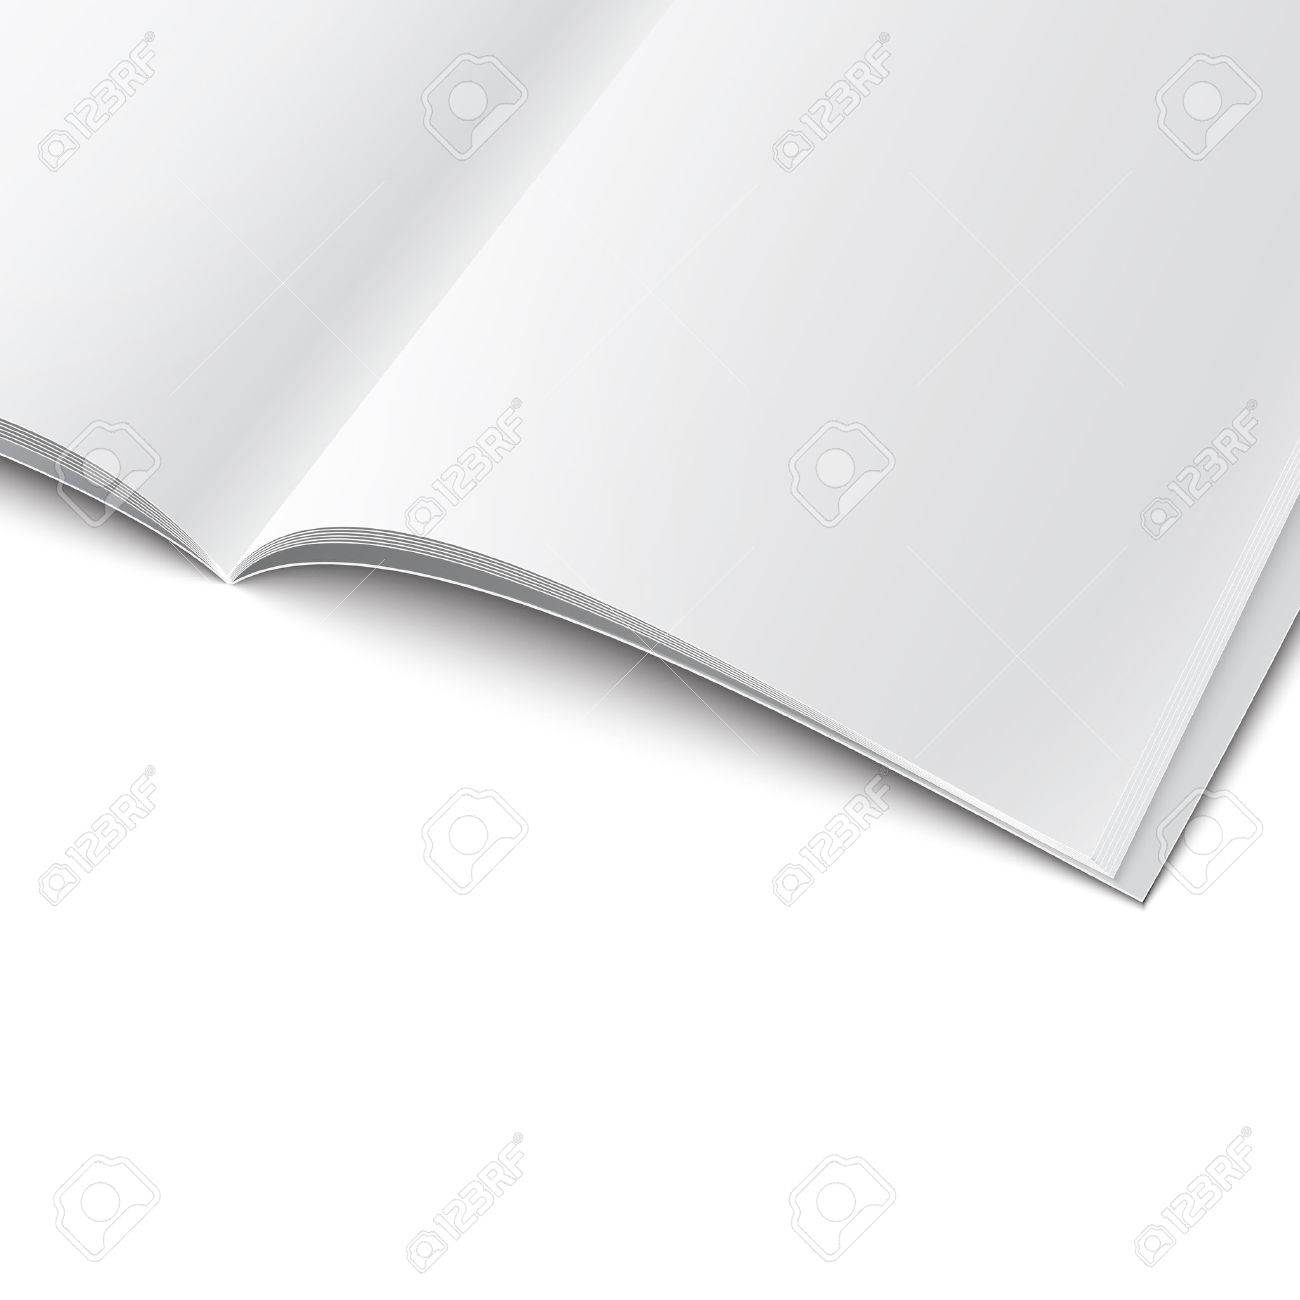 closee up of blank opened magazine cover template on white closee up of blank opened magazine cover template on white background soft shadows